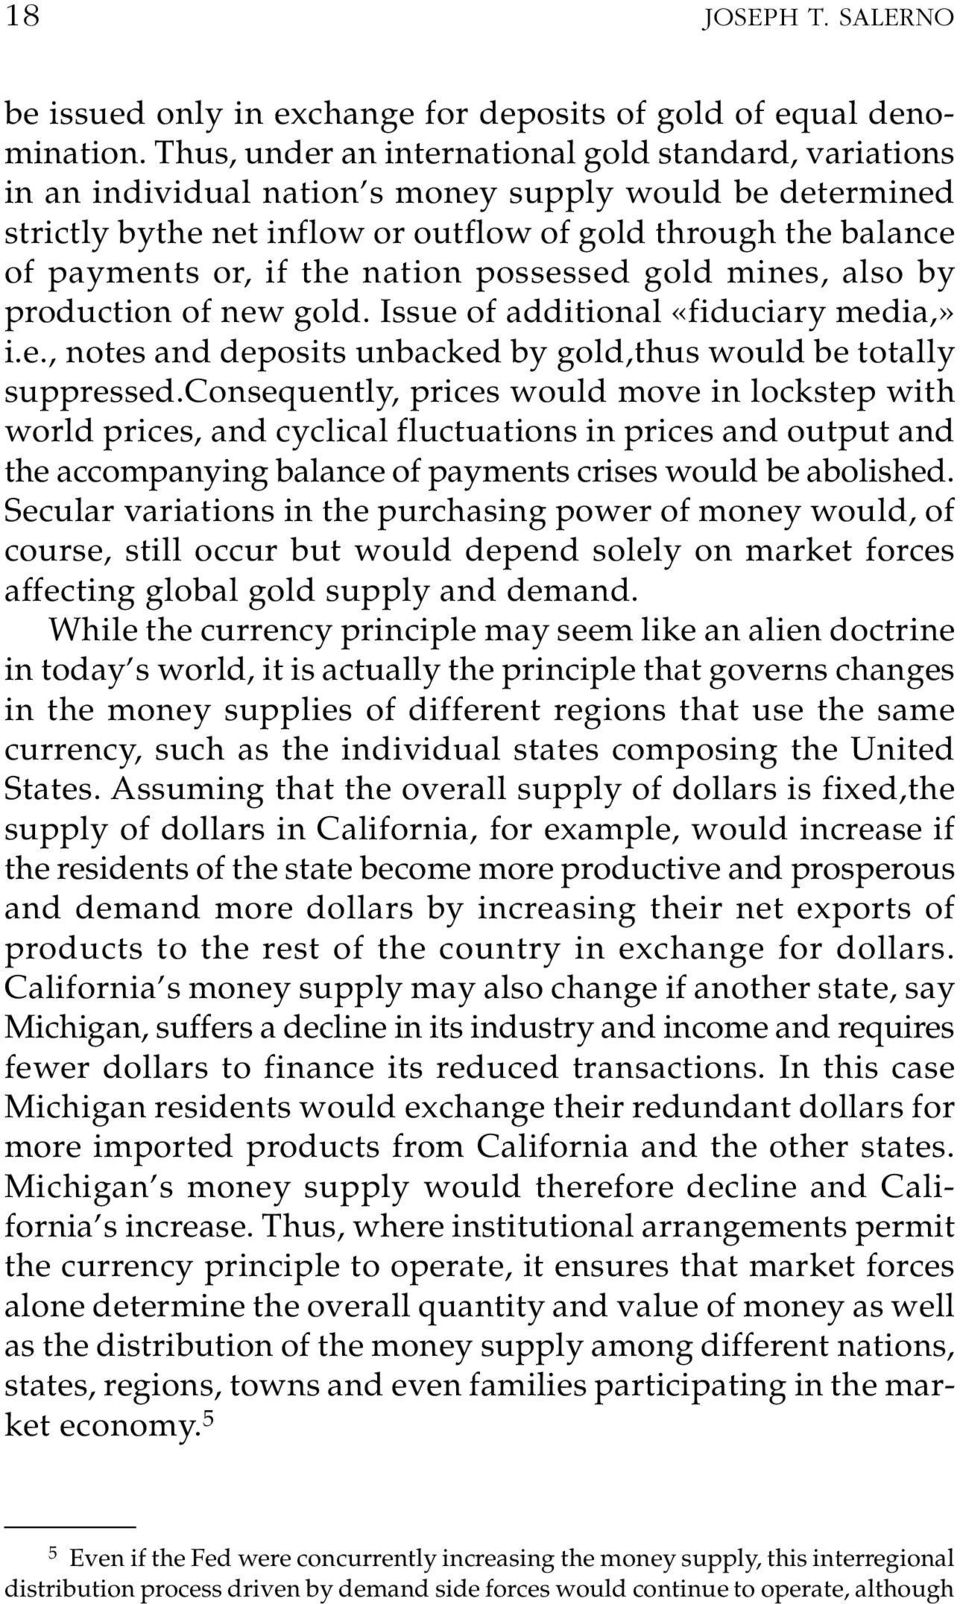 the nation possessed gold mines, also by production of new gold. Issue of additional «fiduciary media,» i.e., notes and deposits unbacked by gold,thus would be totally suppressed.